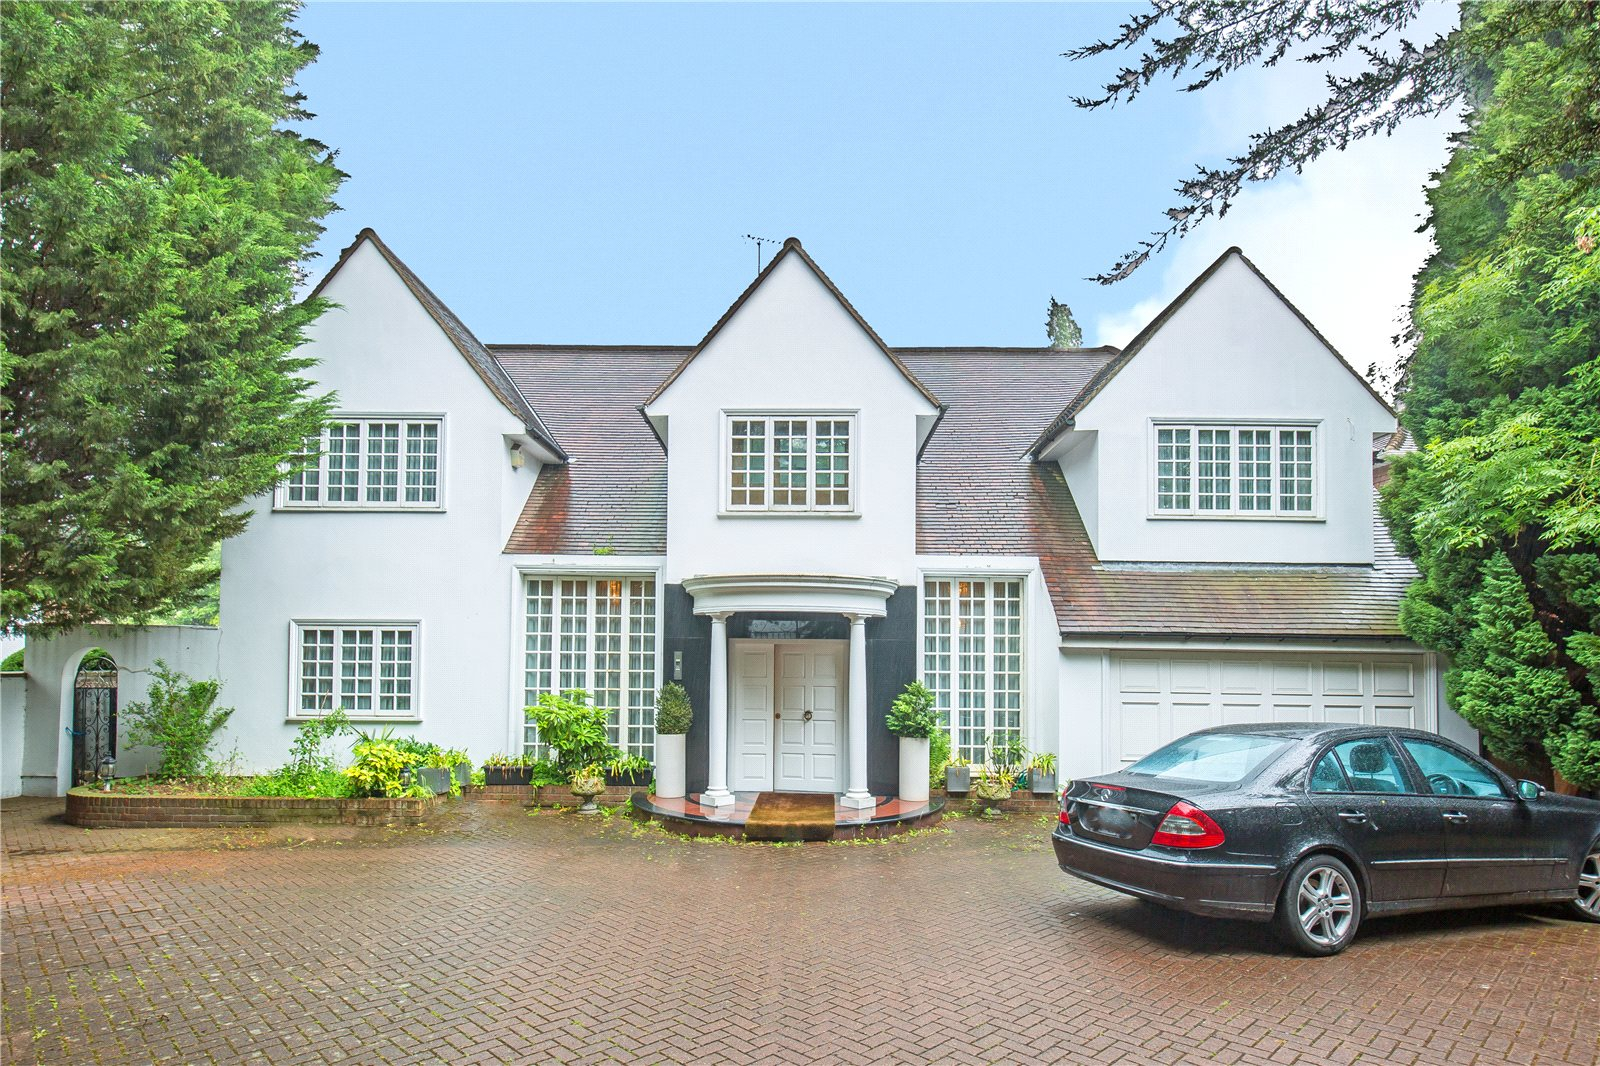 4 Bedroom Detached House For Sale The Bishops Avenue